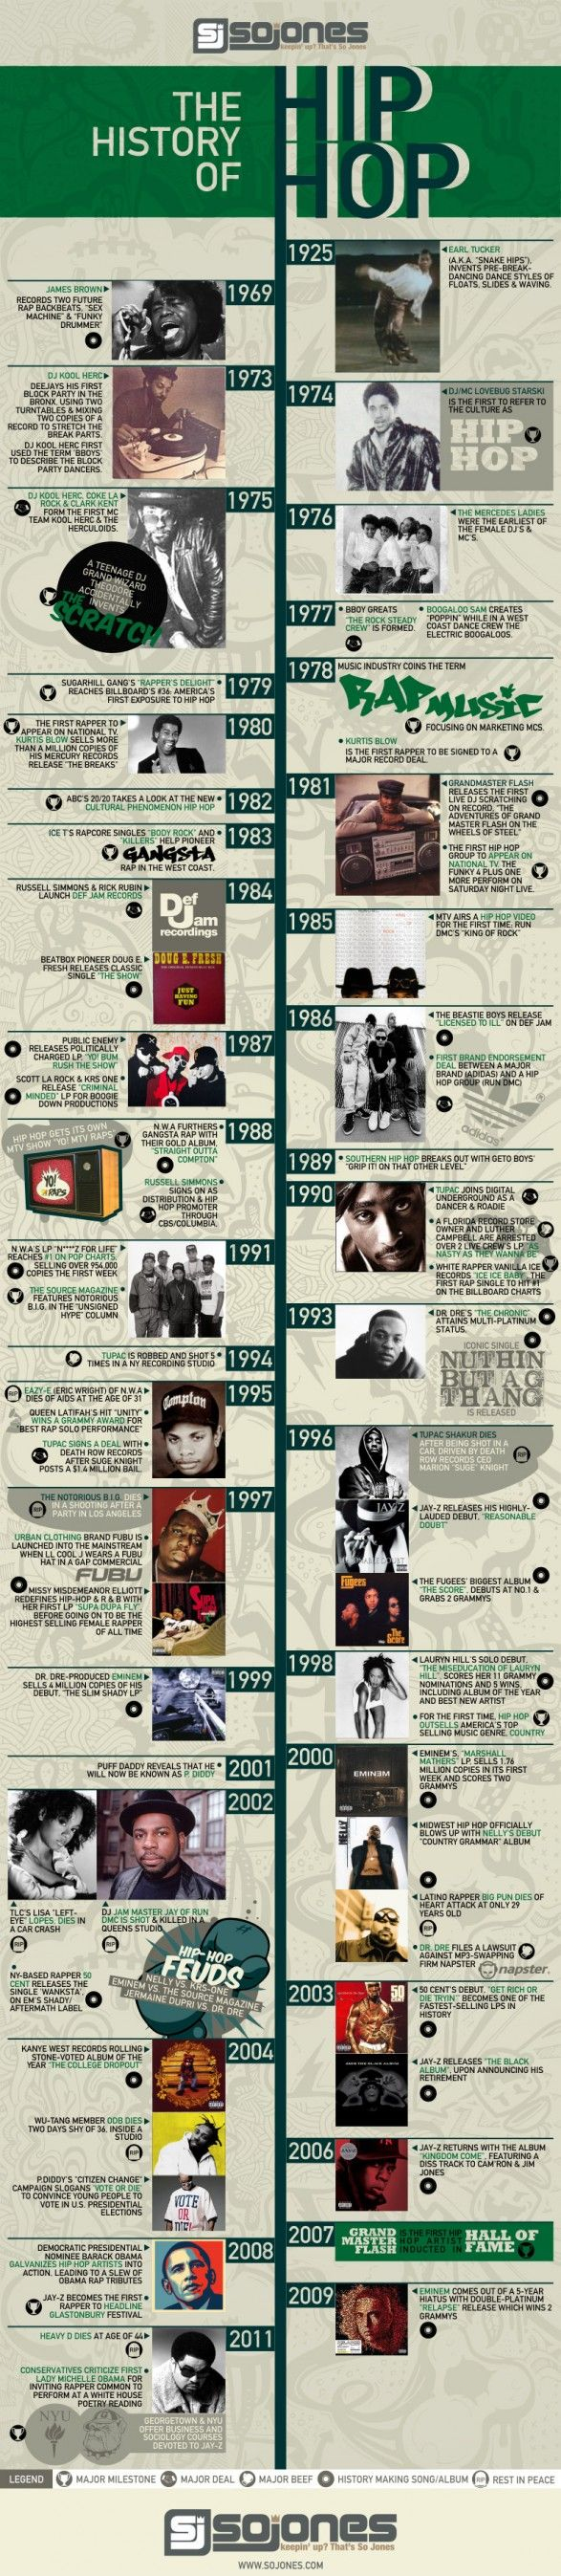 La Historia del Hip Hop | The History of Hip Hop